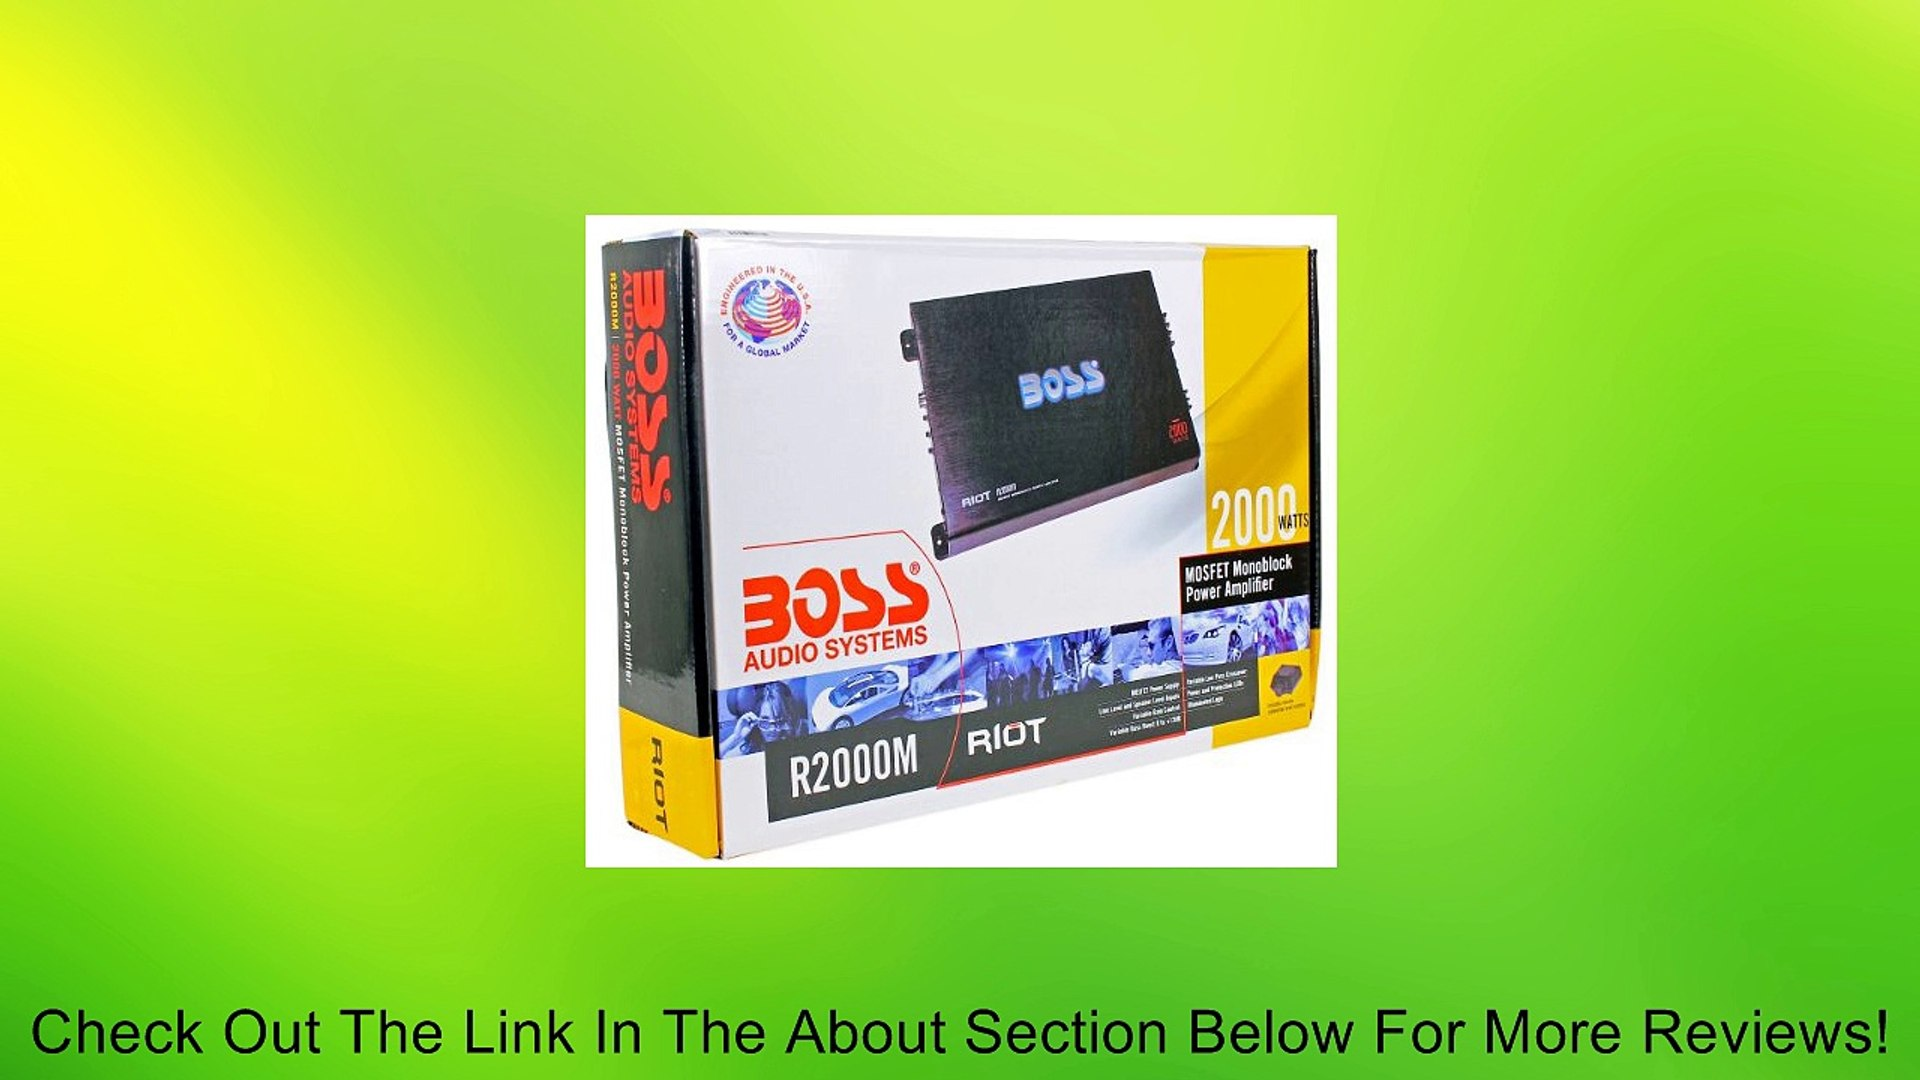 Boss Audio Armor R2000M 2000 Watt Mono Class A/B MOSFET Power Amplifier With Included Remote Subwoof